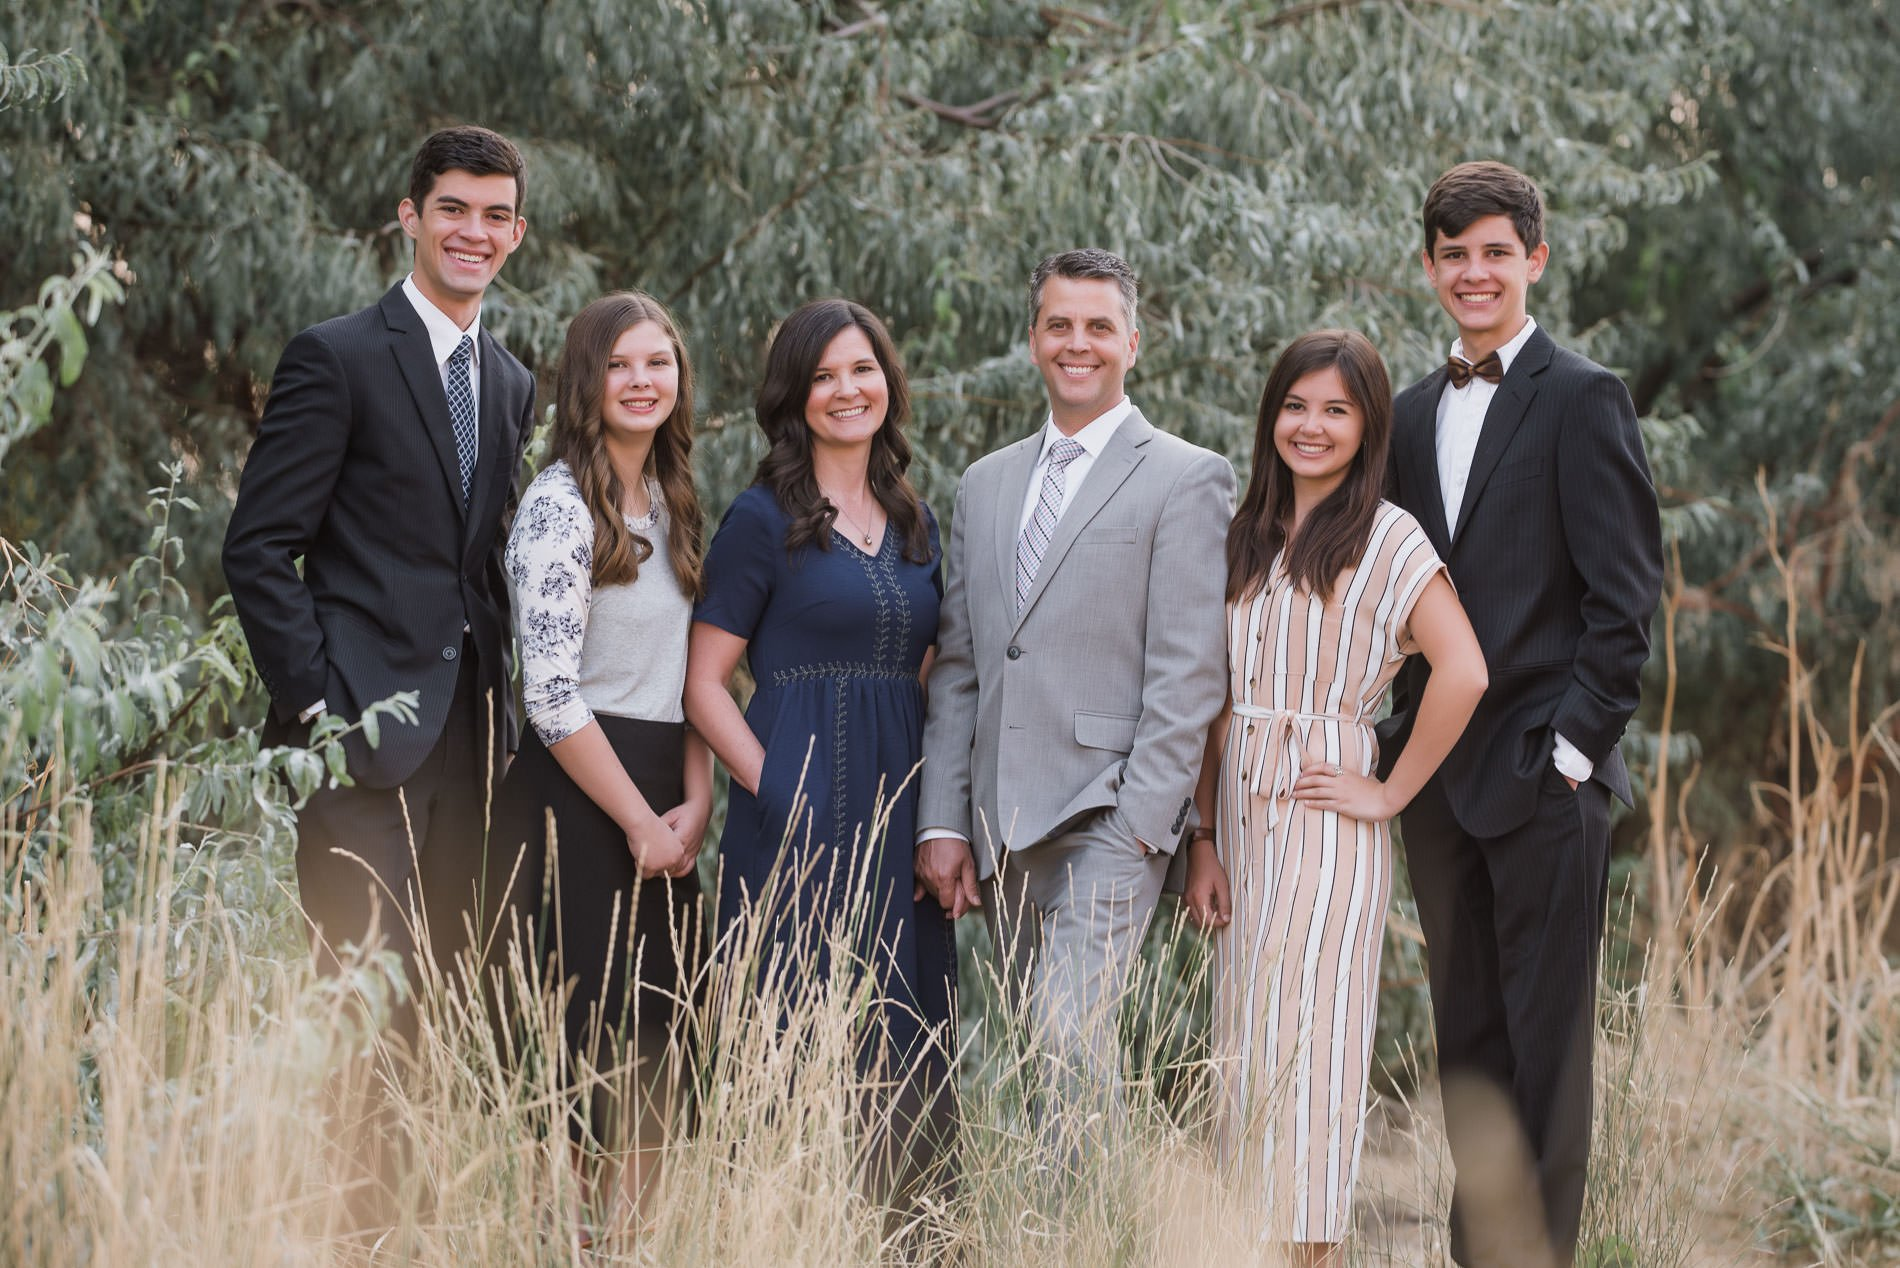 Dressy family portrait by the Russian olive trees in family photography at tunnel springs park.